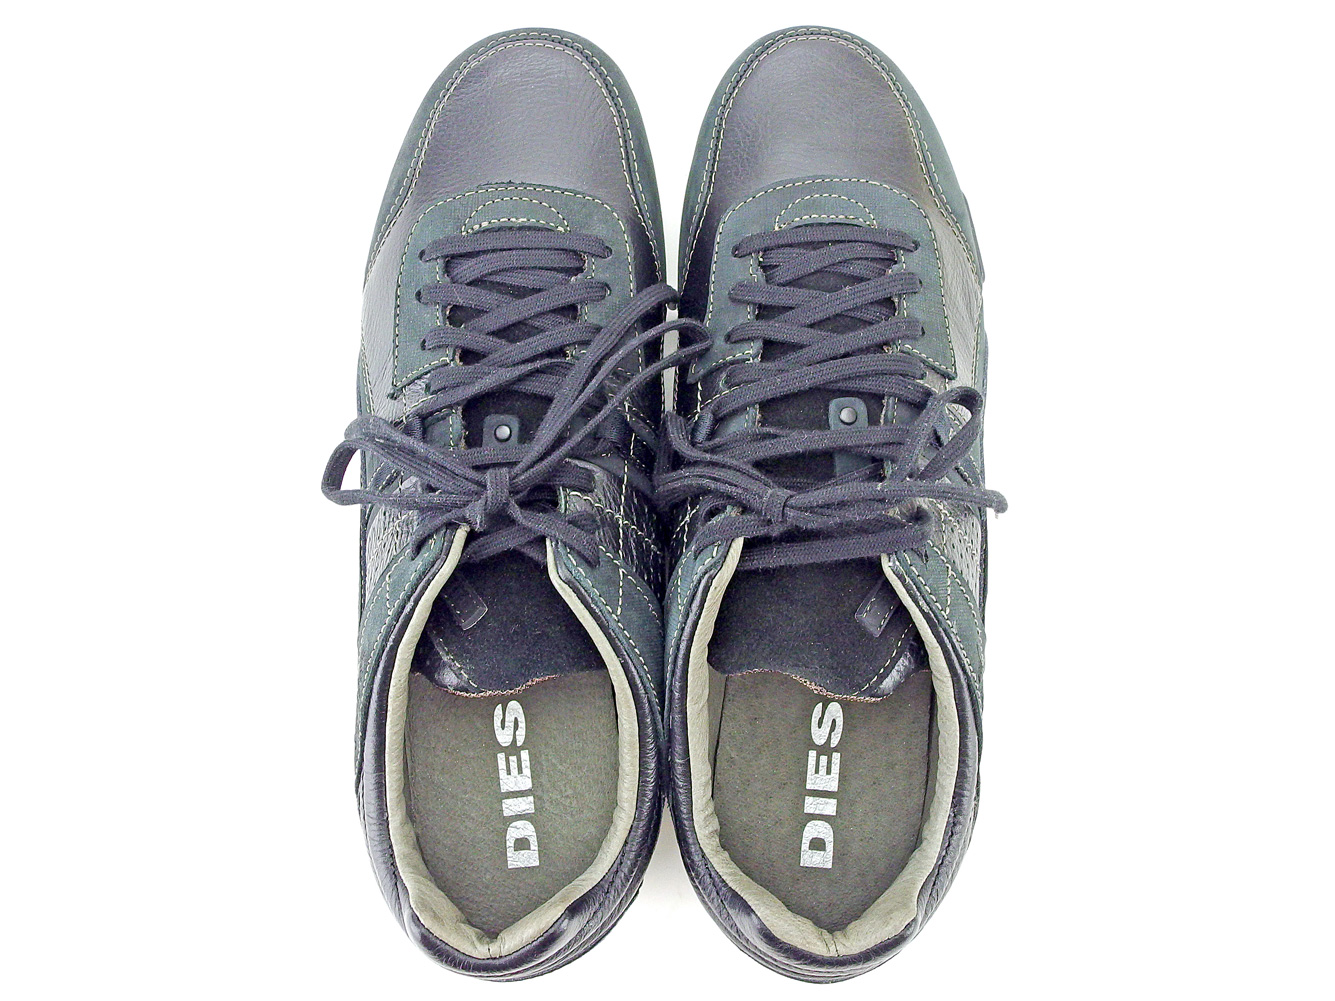 9339e46bffccfd BRAND DEPOT TOKYO  Diesel sneakers shoes shoes Diesel black system ...